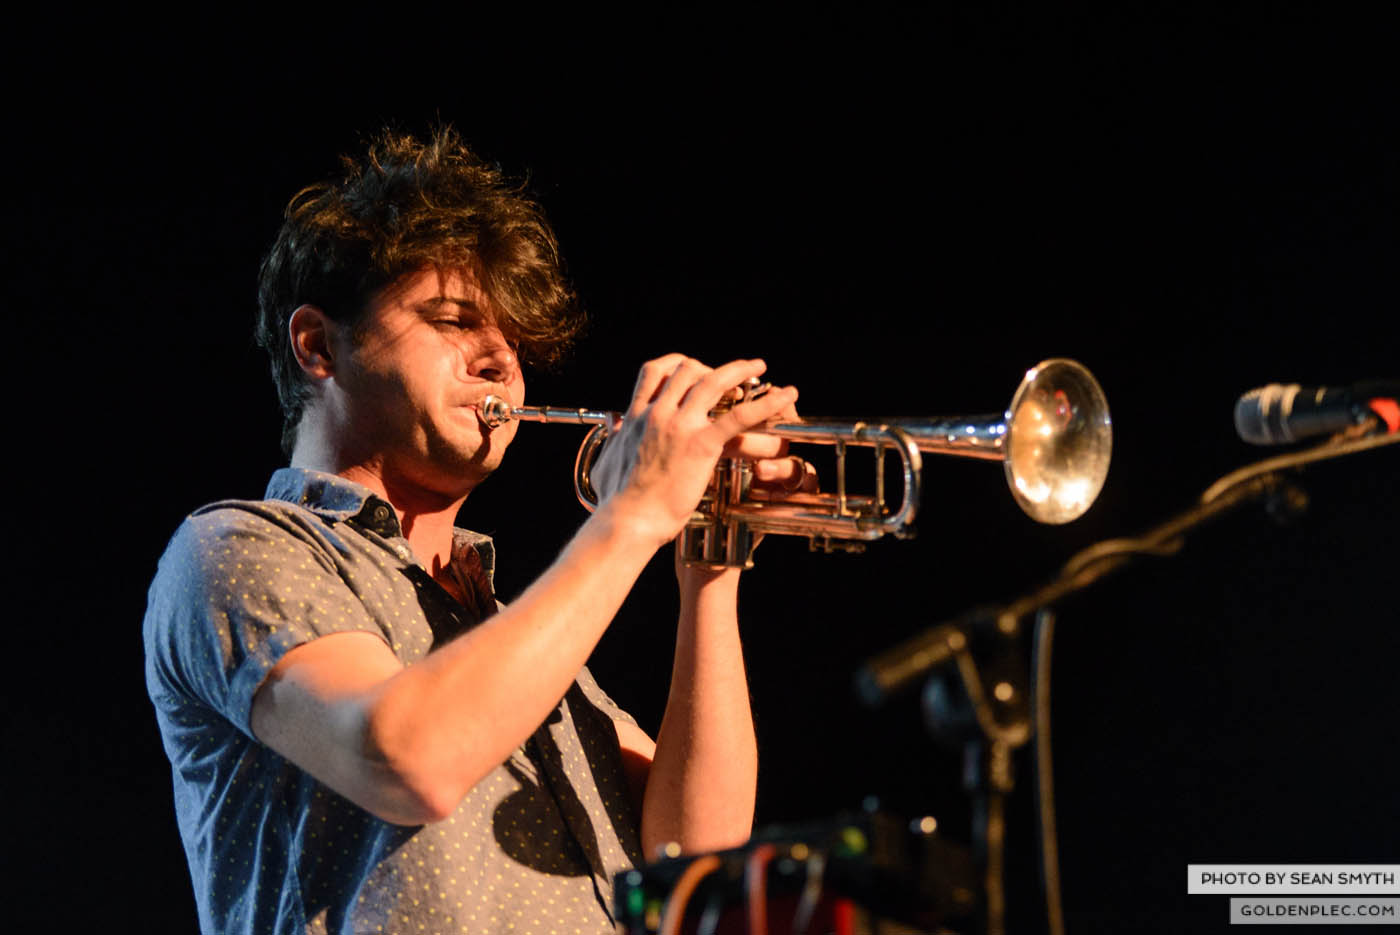 the-antlers-at-the-olympia-theatre-by-sean-smyth-30-10-14-9-of-22